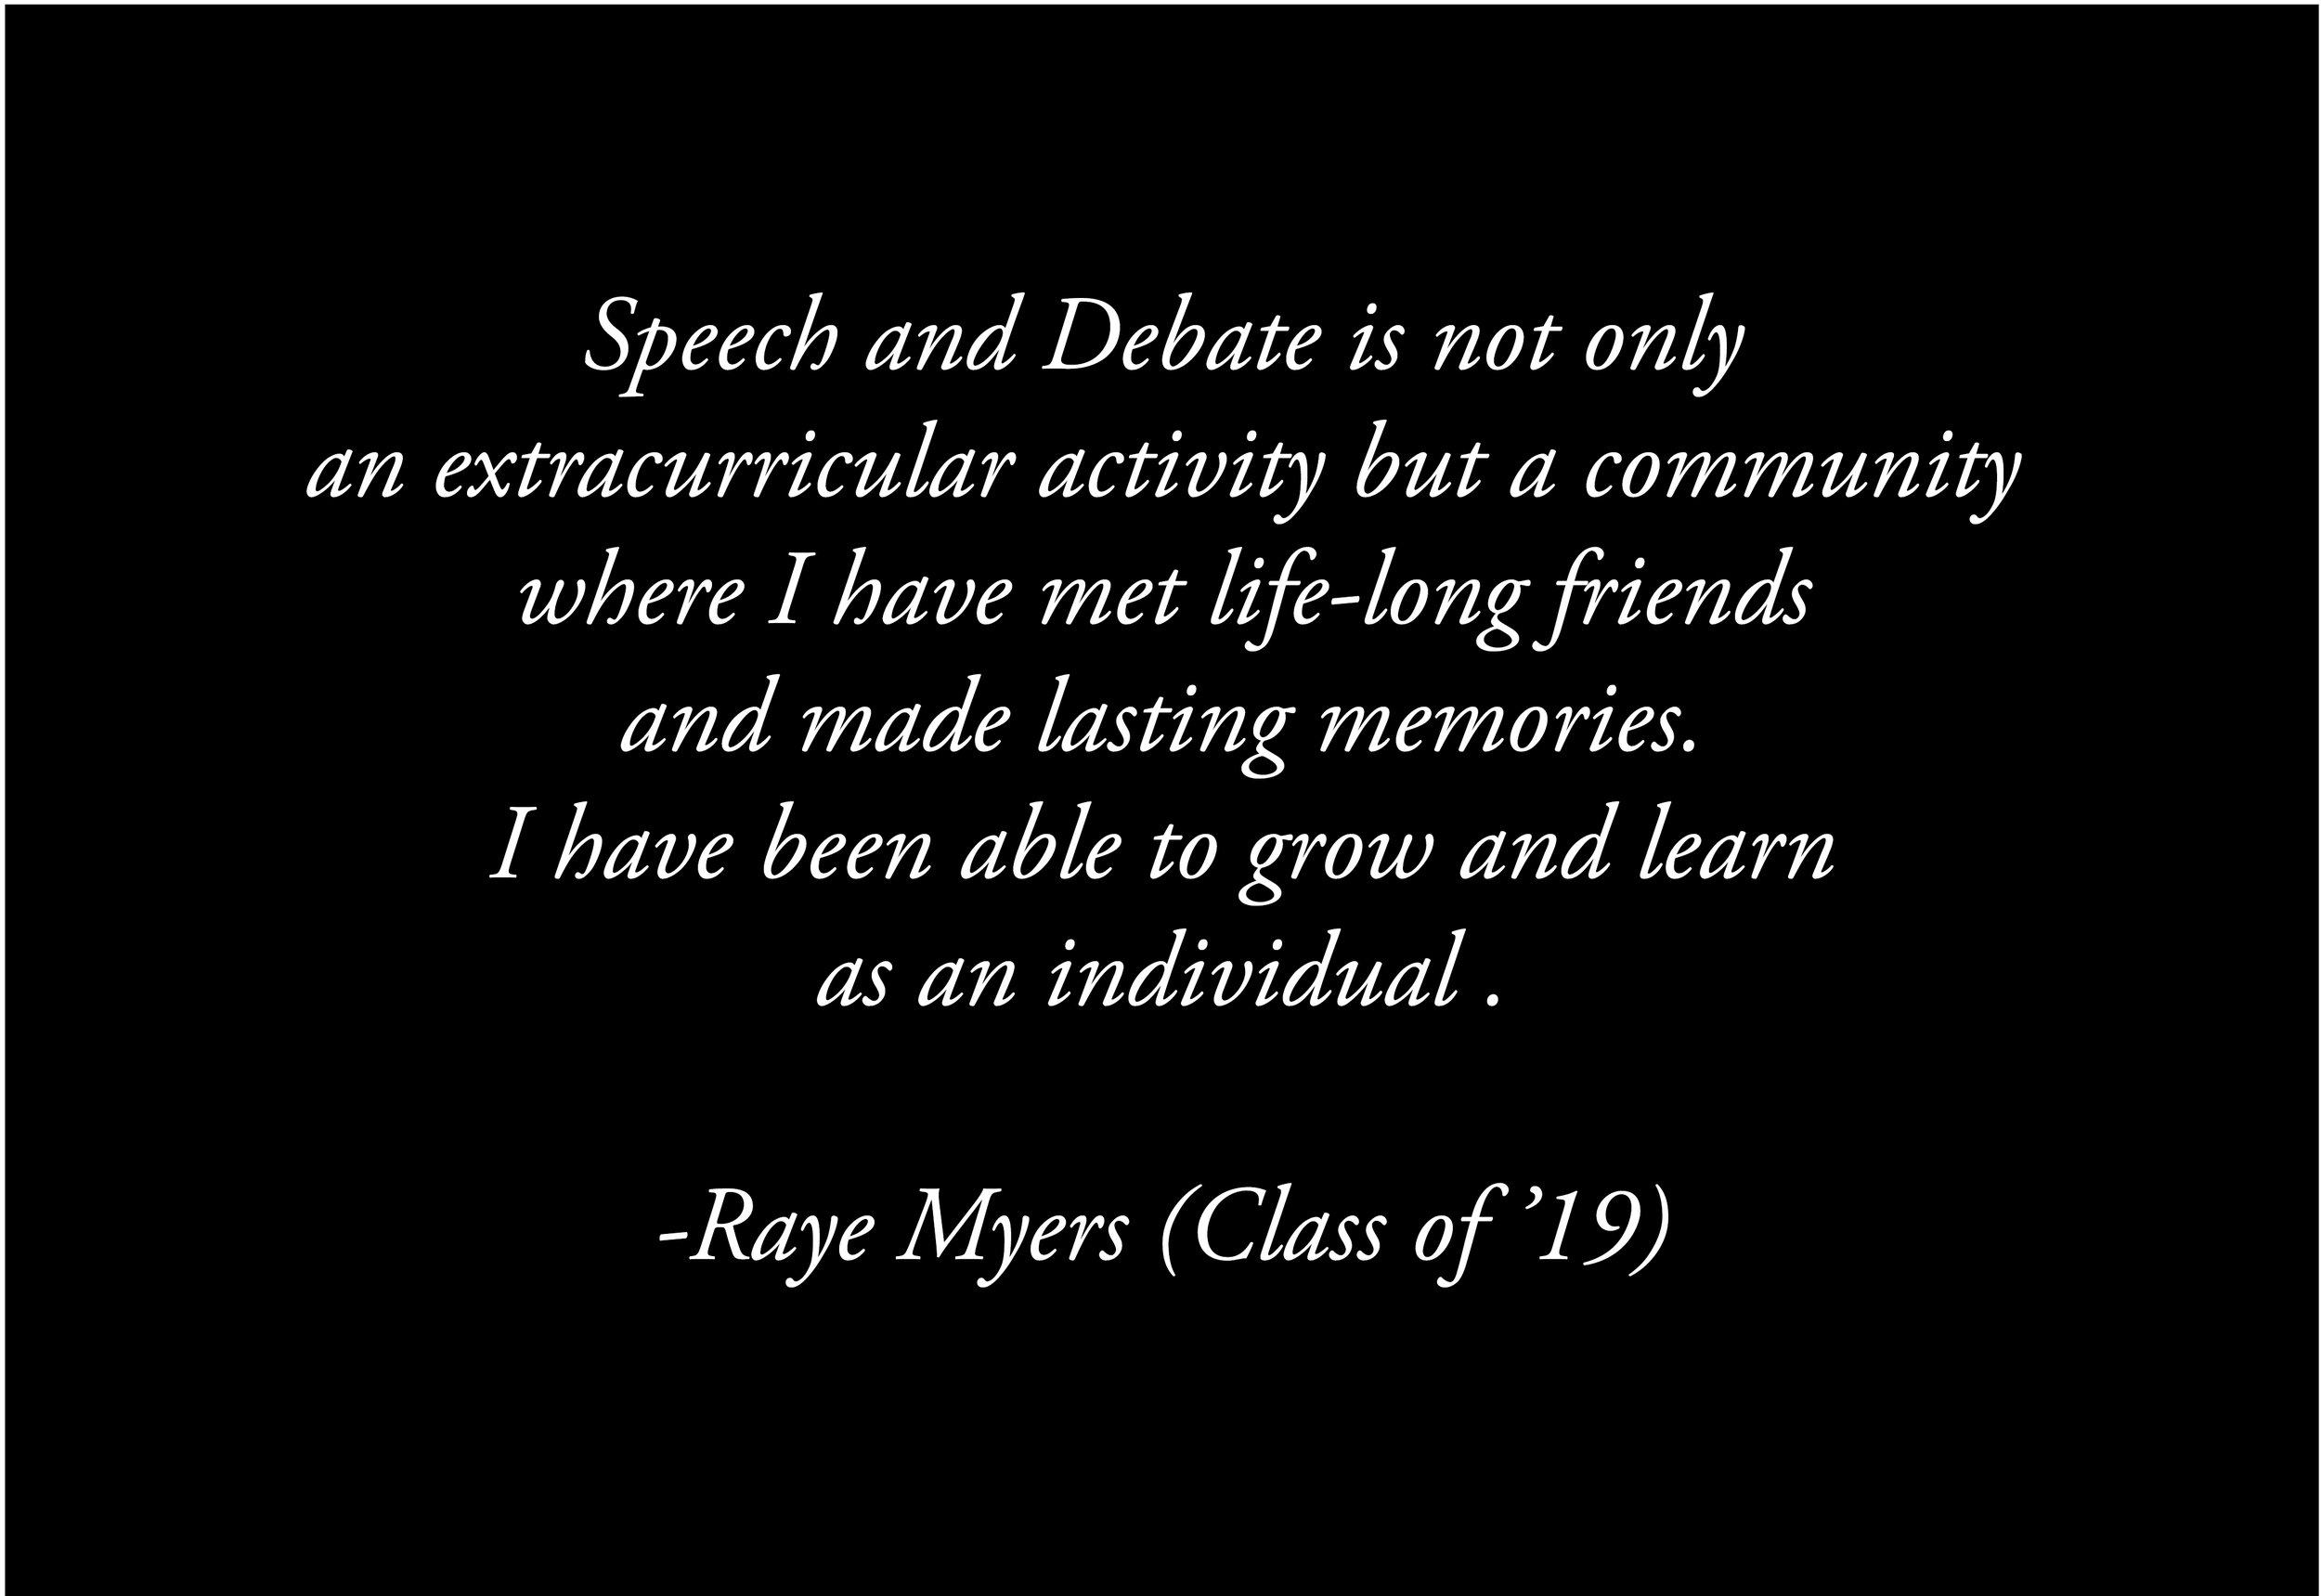 Raye Quote_edited-1.jpg